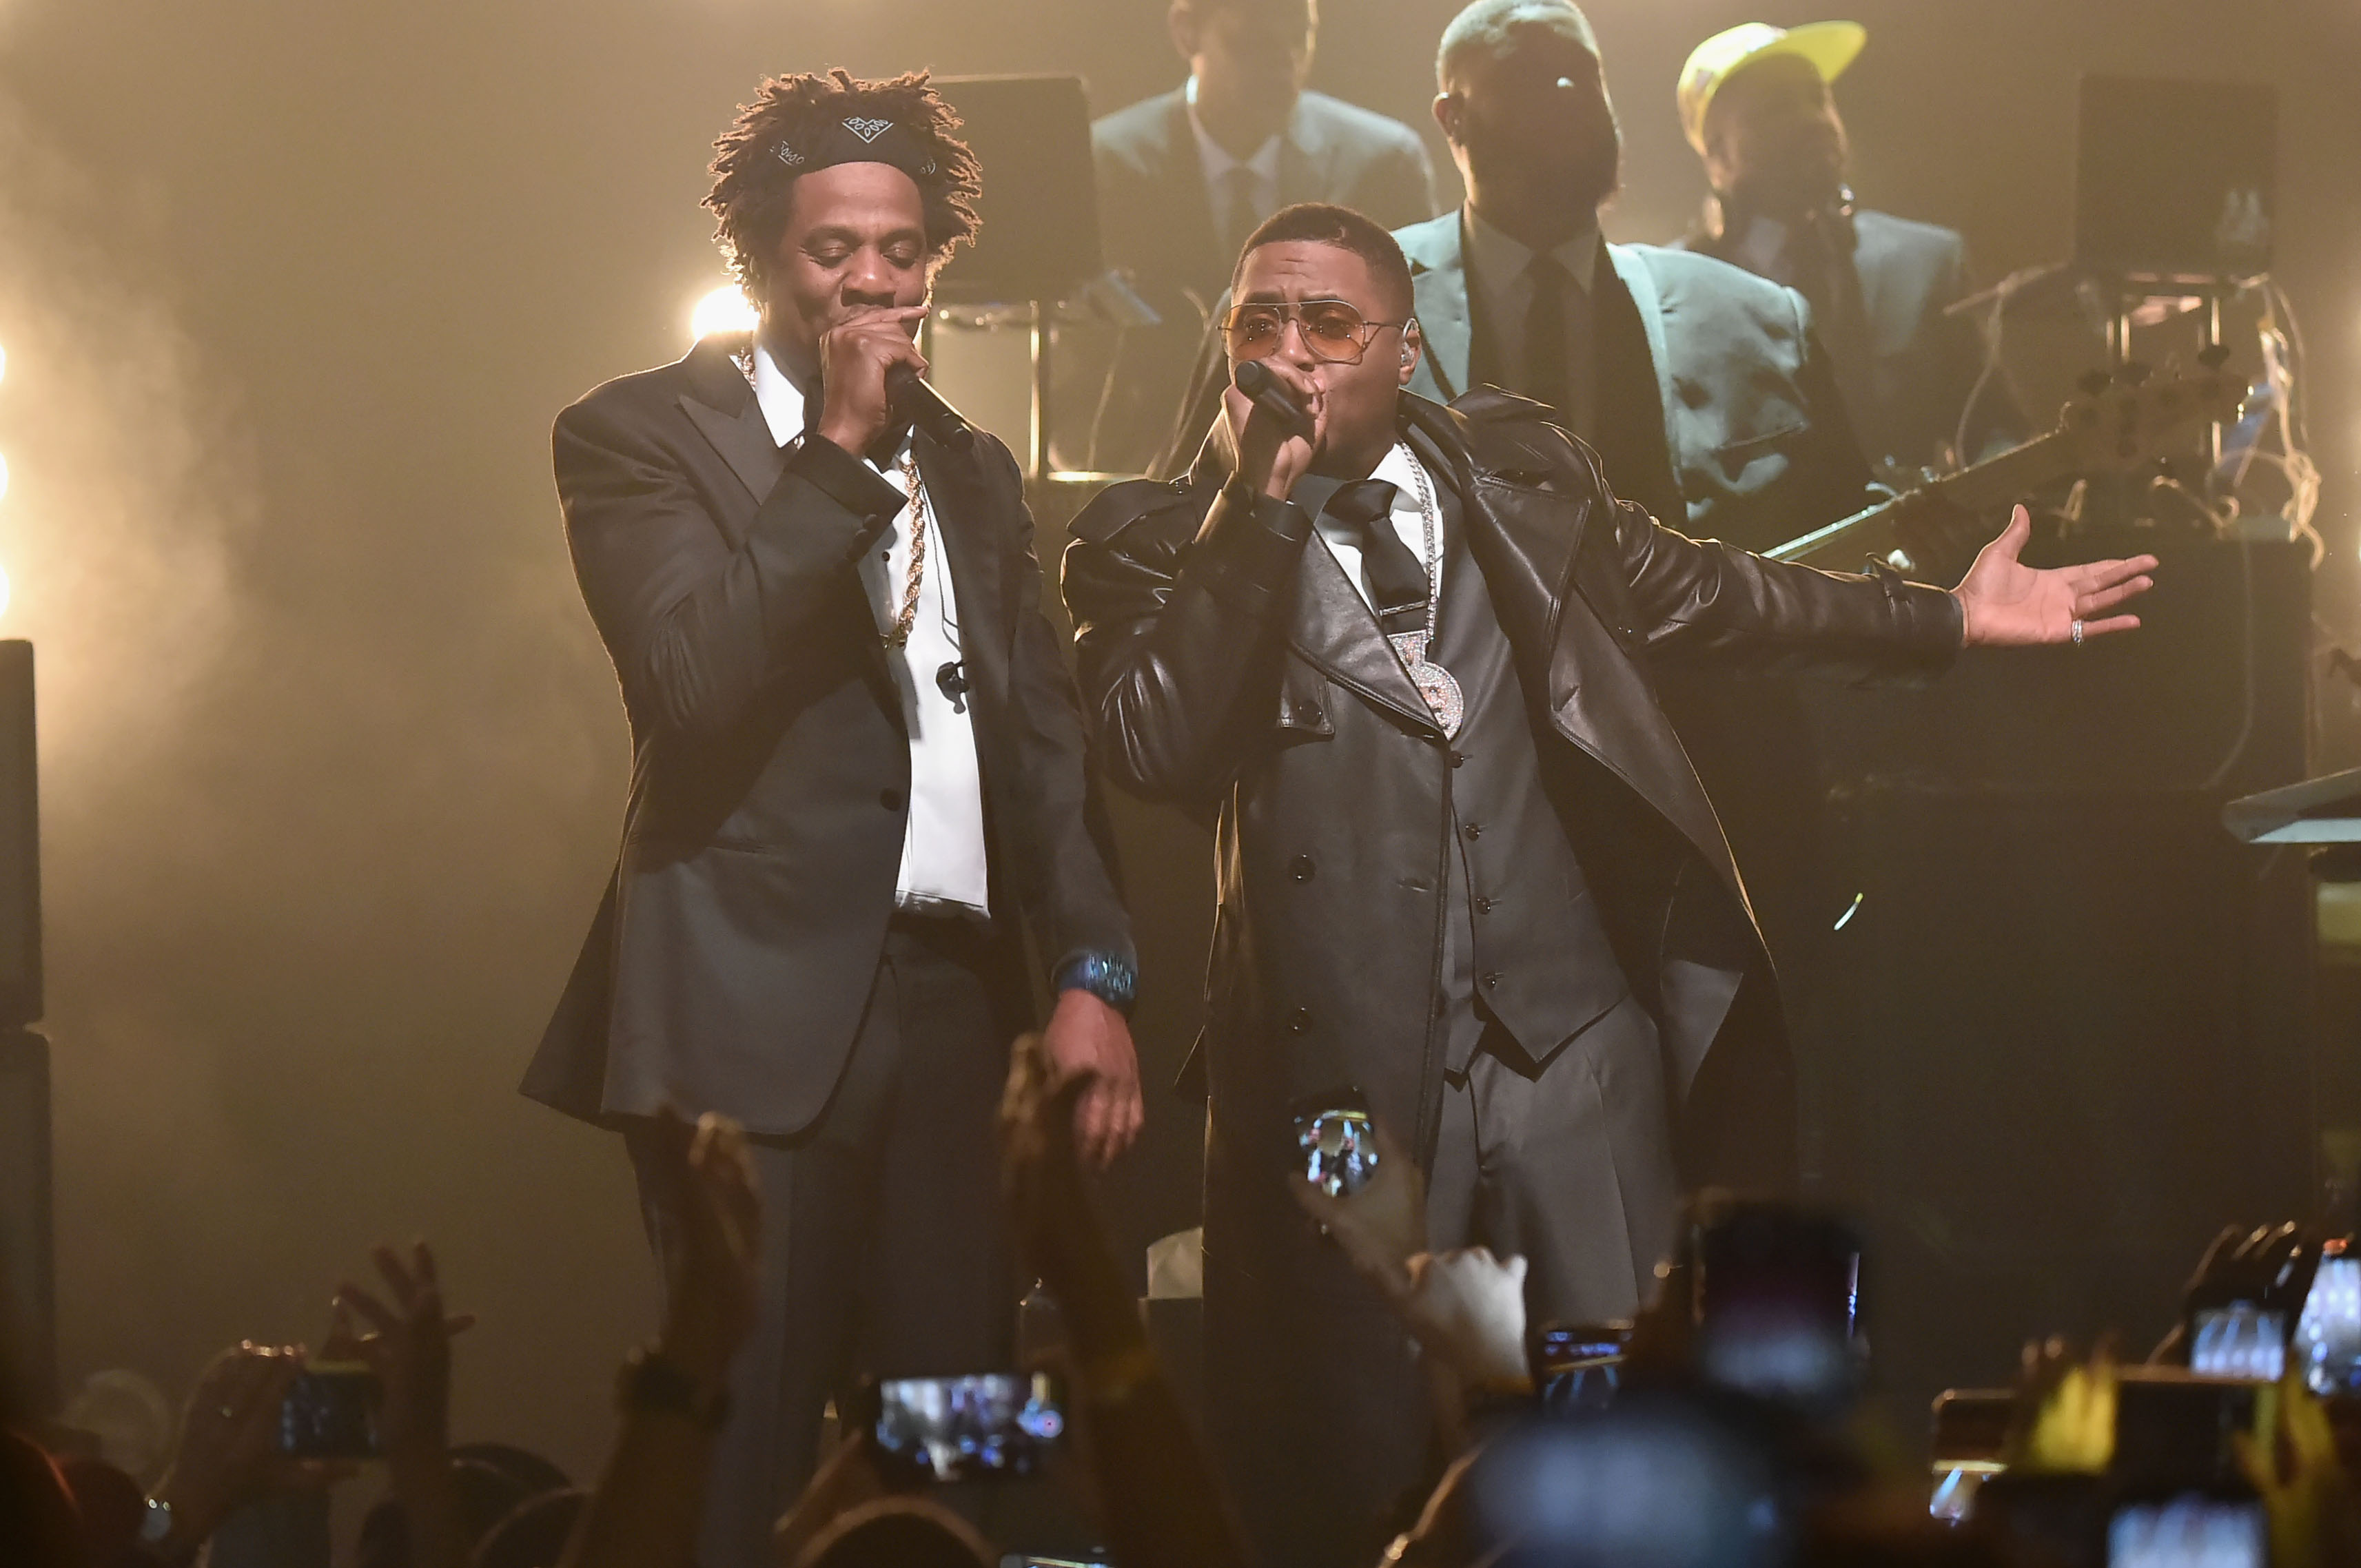 Jay-Z owns Webster Hall | New York Amsterdam News: The new